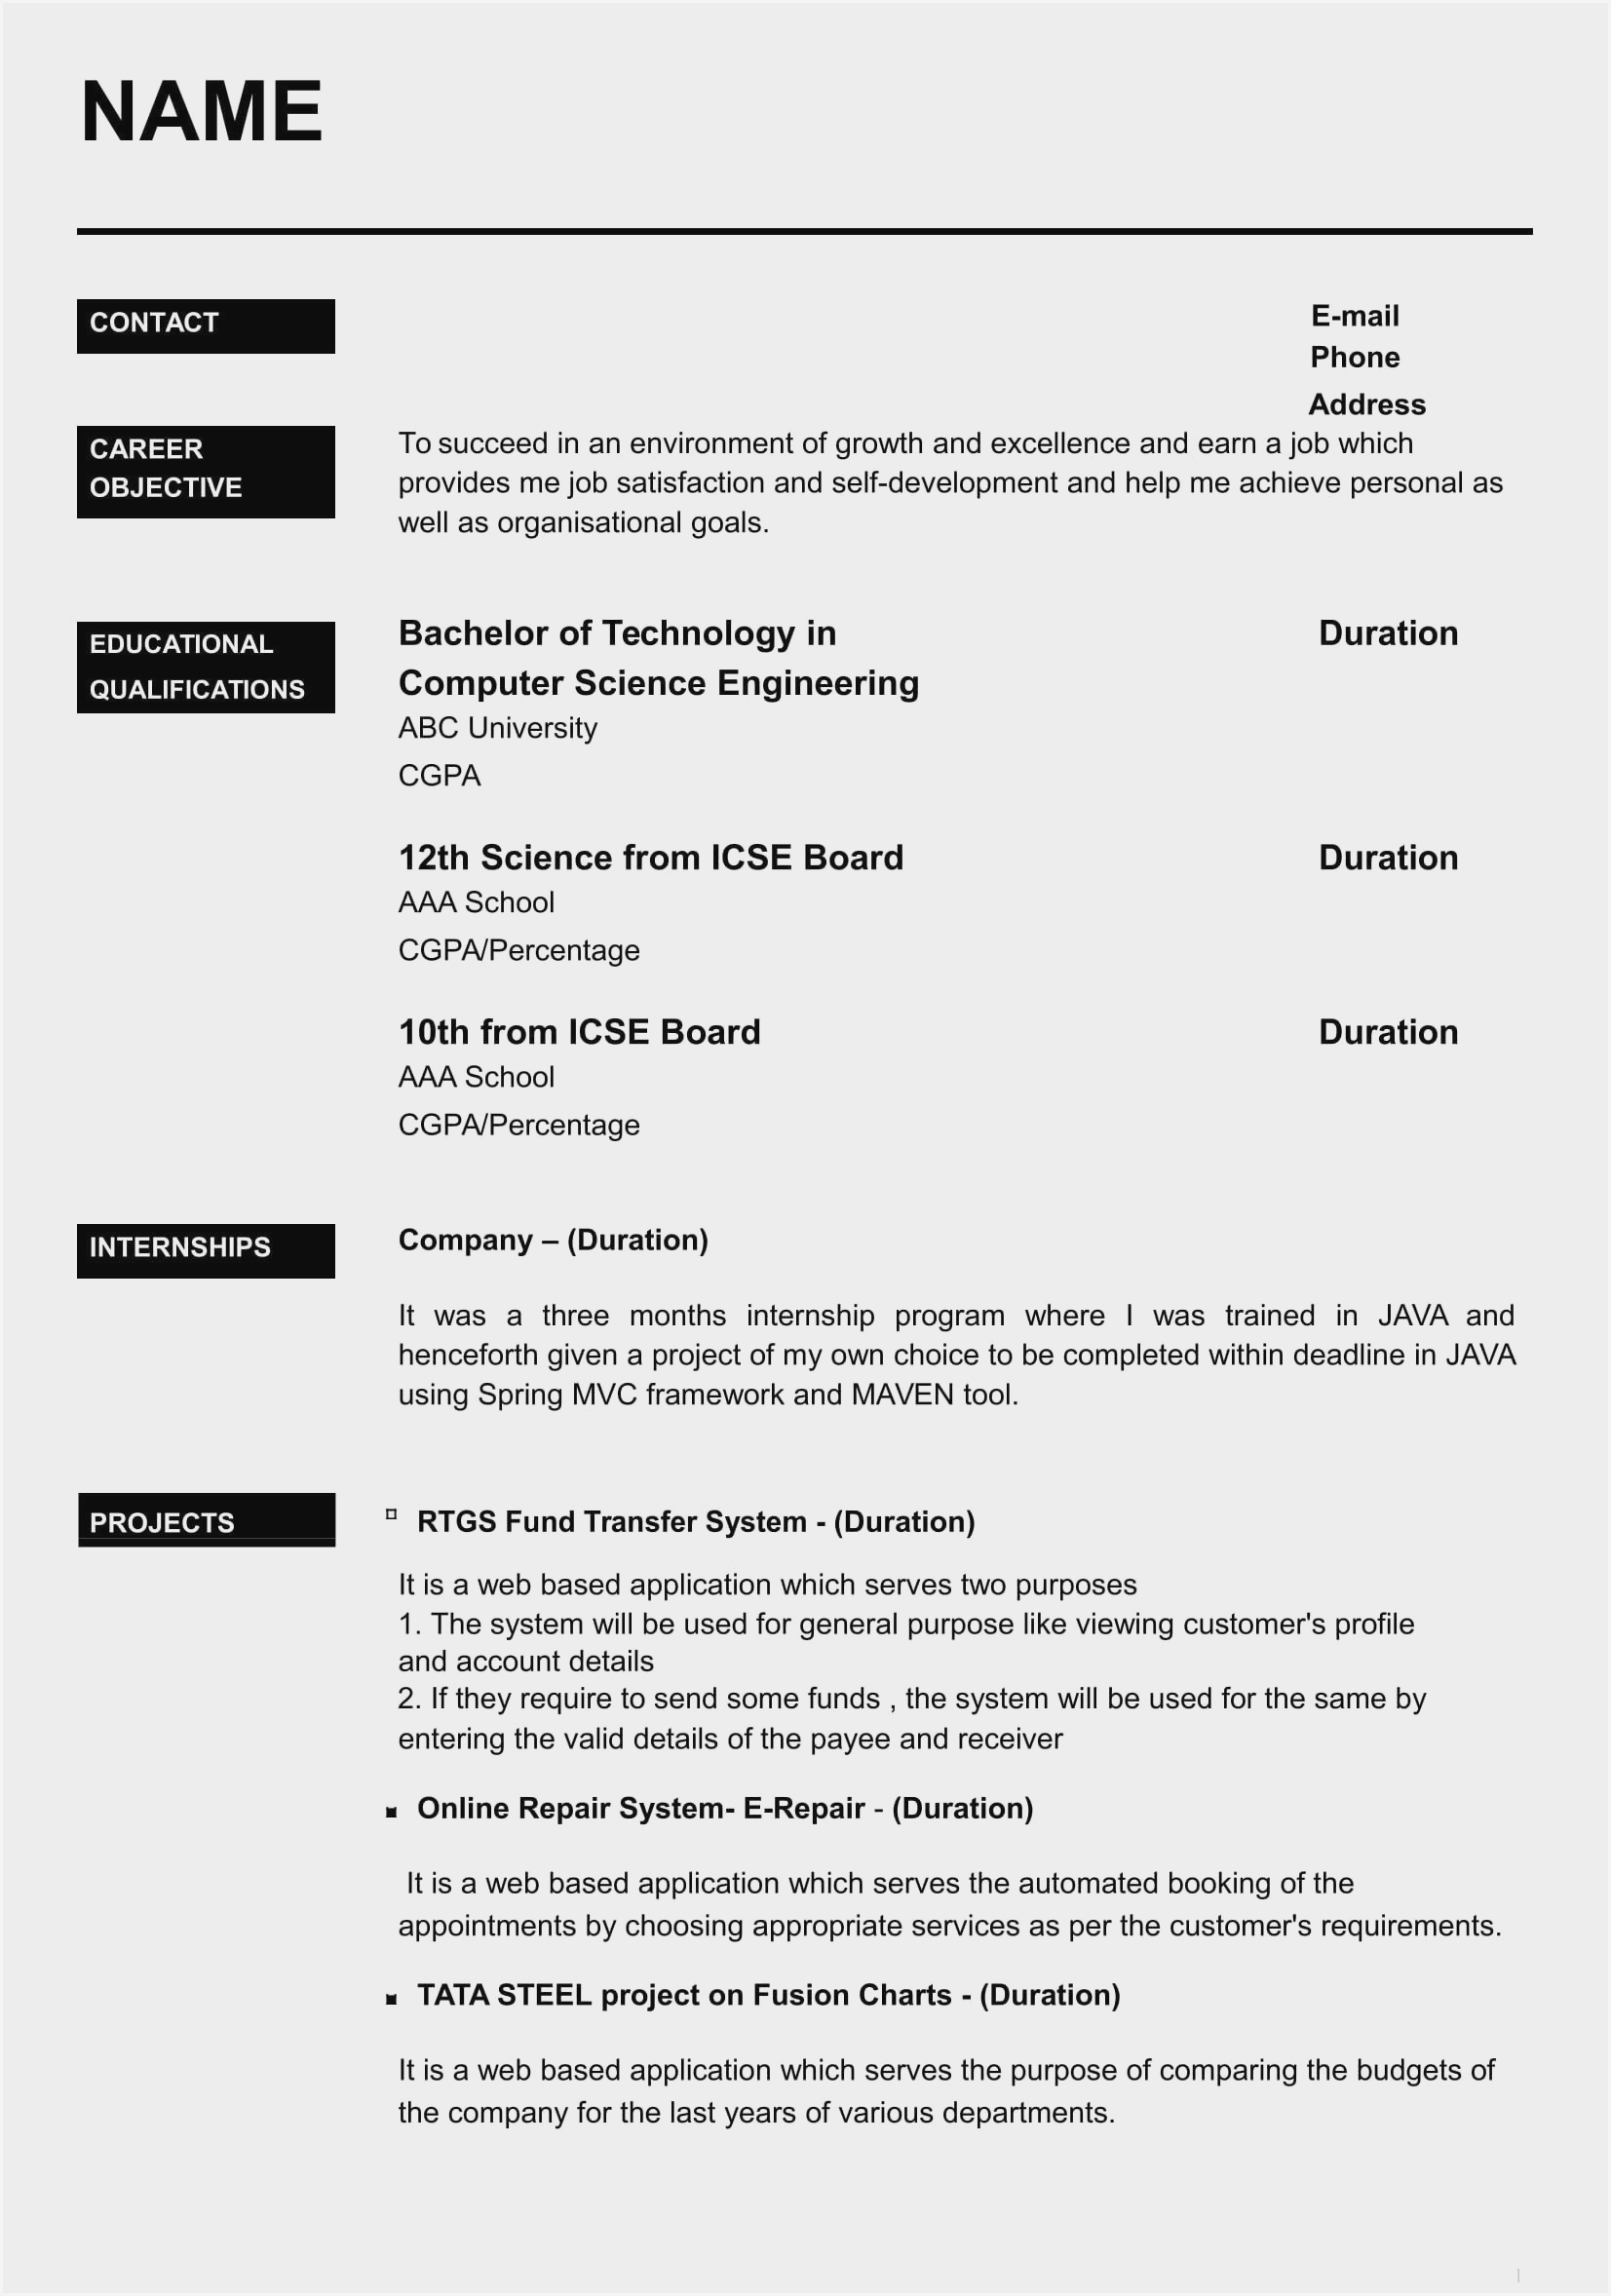 Resume format Pdf Download for Freshers India